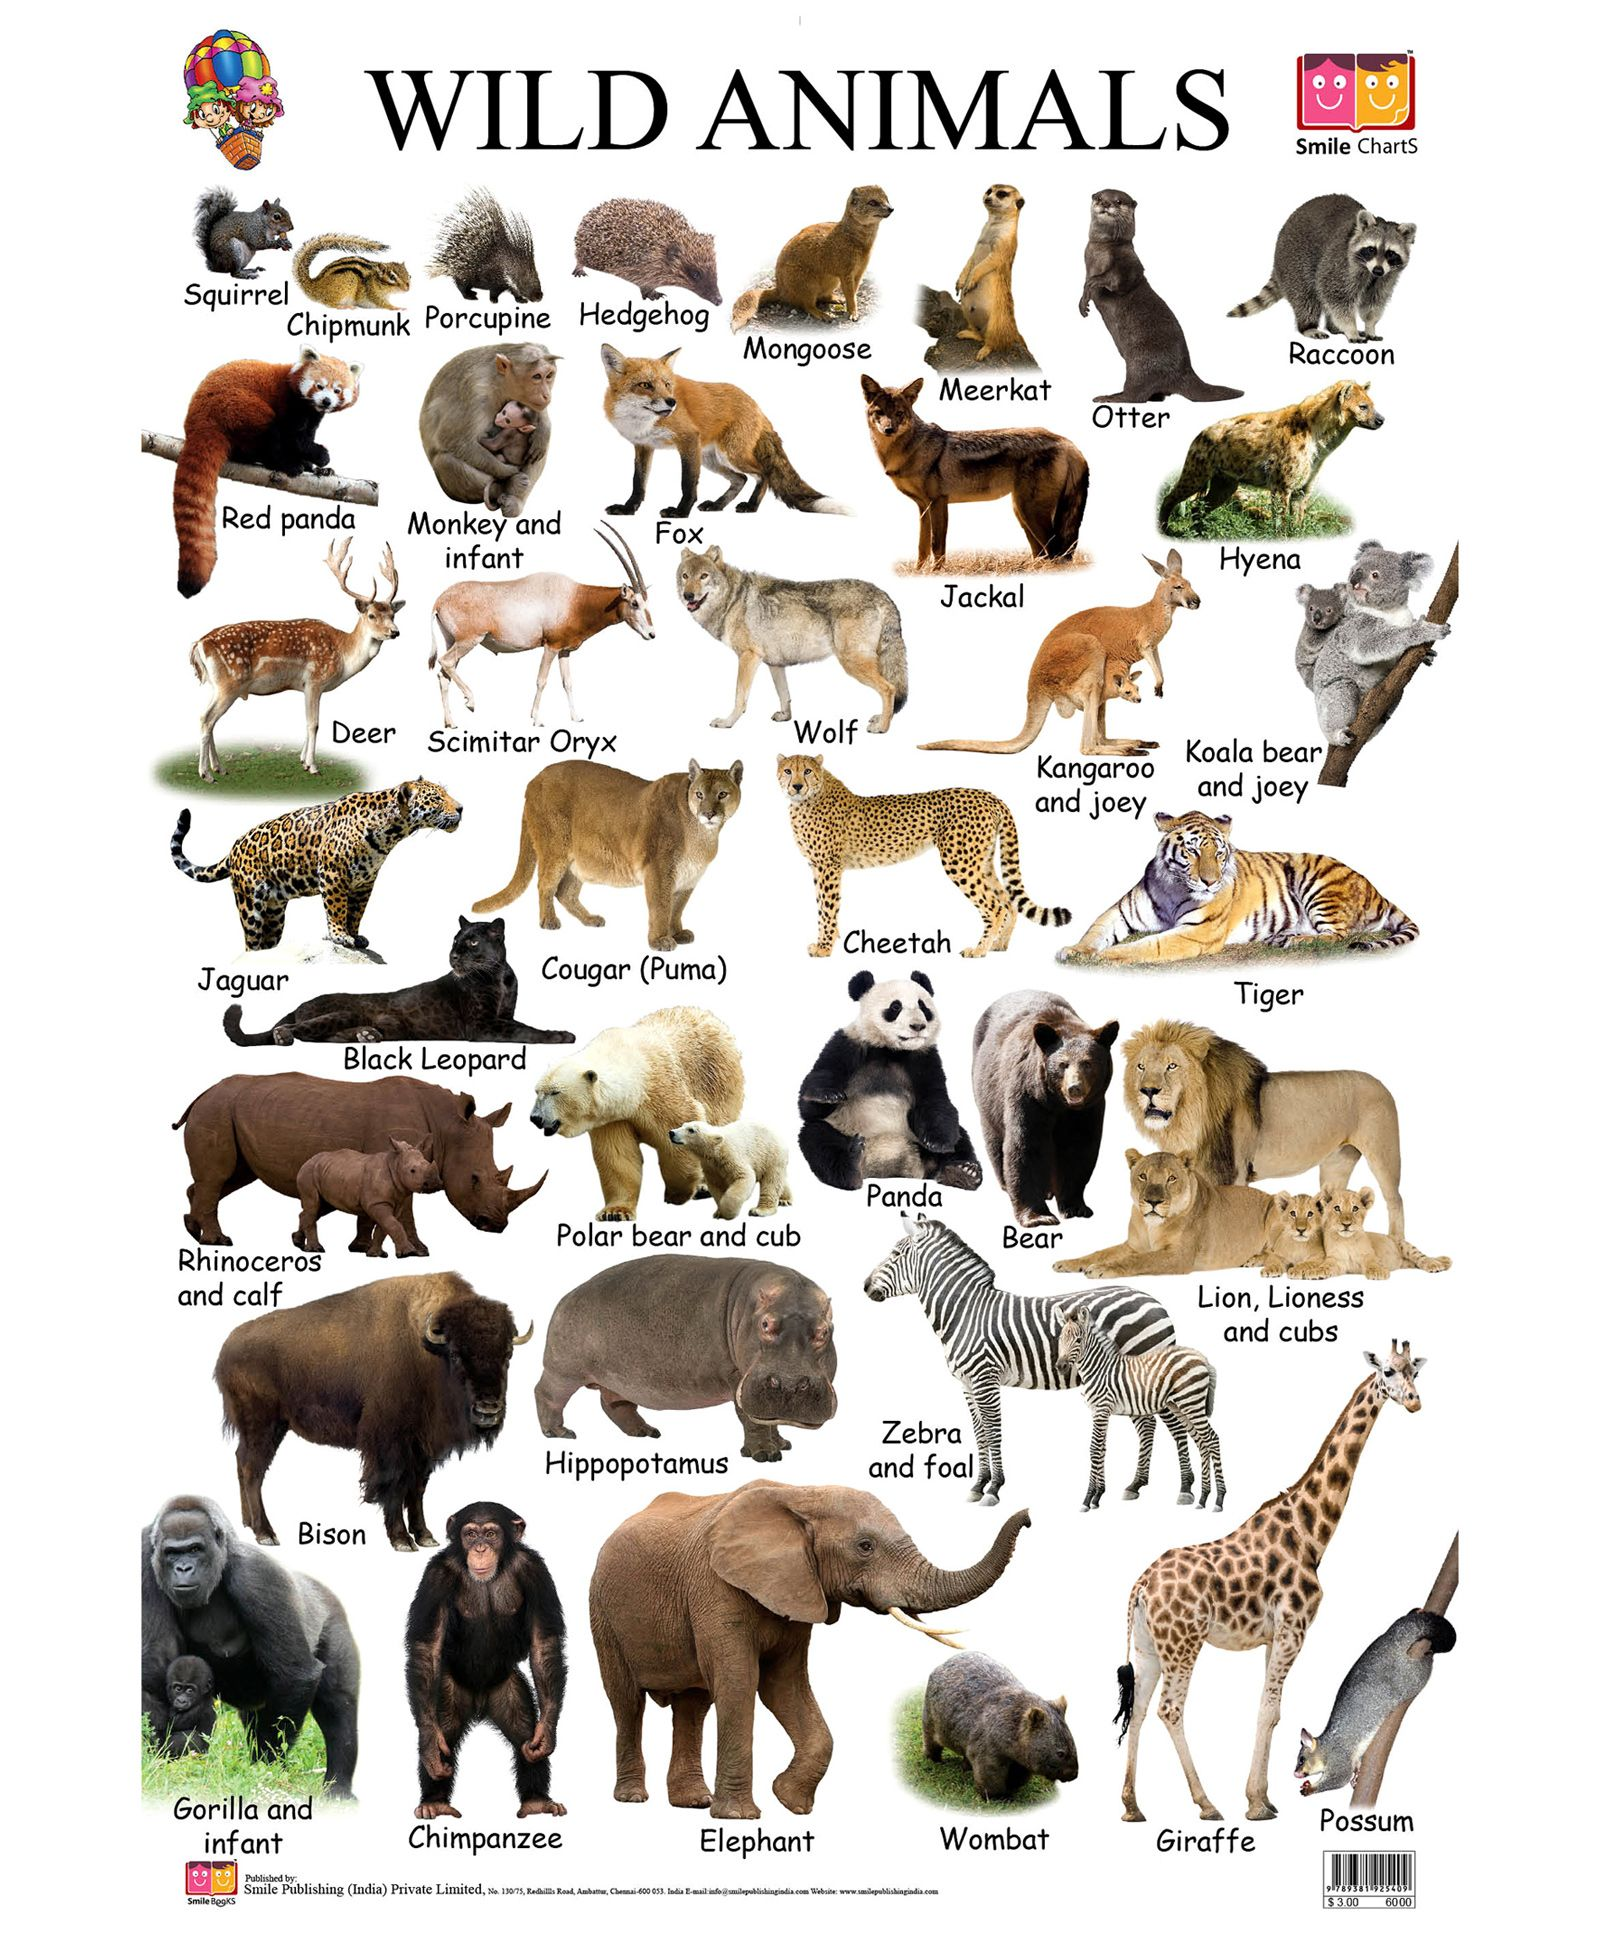 All Wild Animals Names With Their More From My Sitewild Animal Images Namebeautiful Wildlife Pictureswildlife